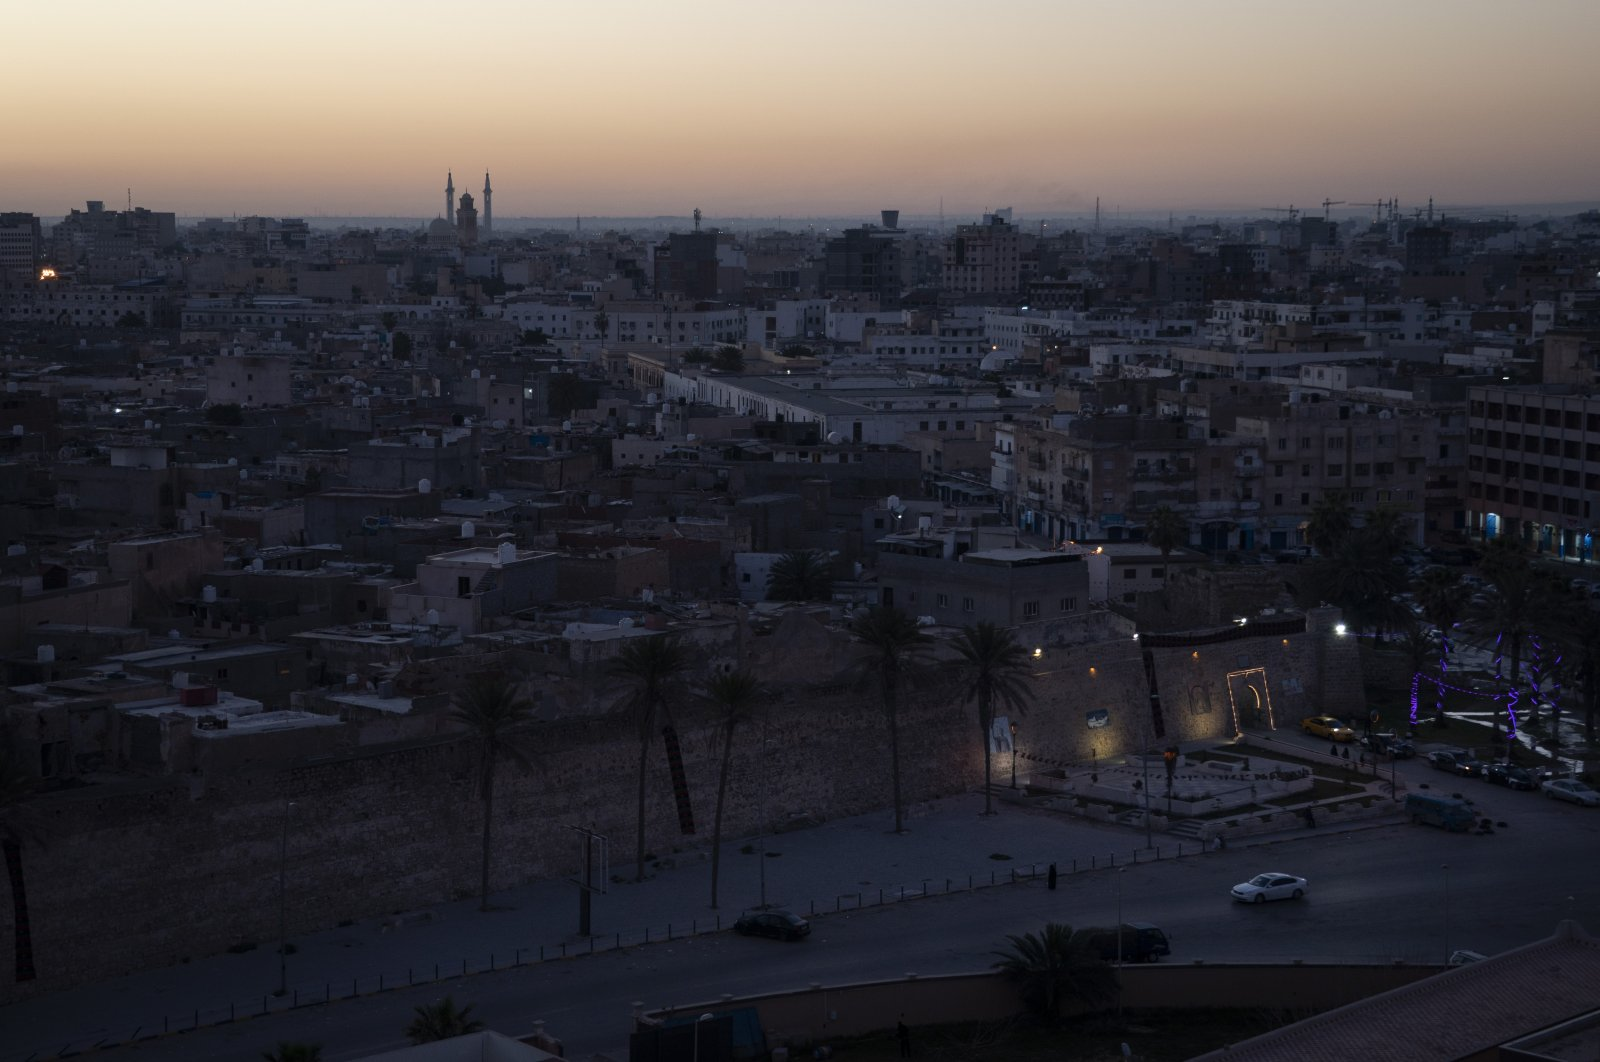 In this Feb. 29, 2020 photo, the walls surrounding the Old City are illuminated before sunrise in Tripoli, Libya. The country plunged into chaos in 2011, when a civil war toppled longtime dictator Moammar Gadhafi, who was later killed. (AP Photo)